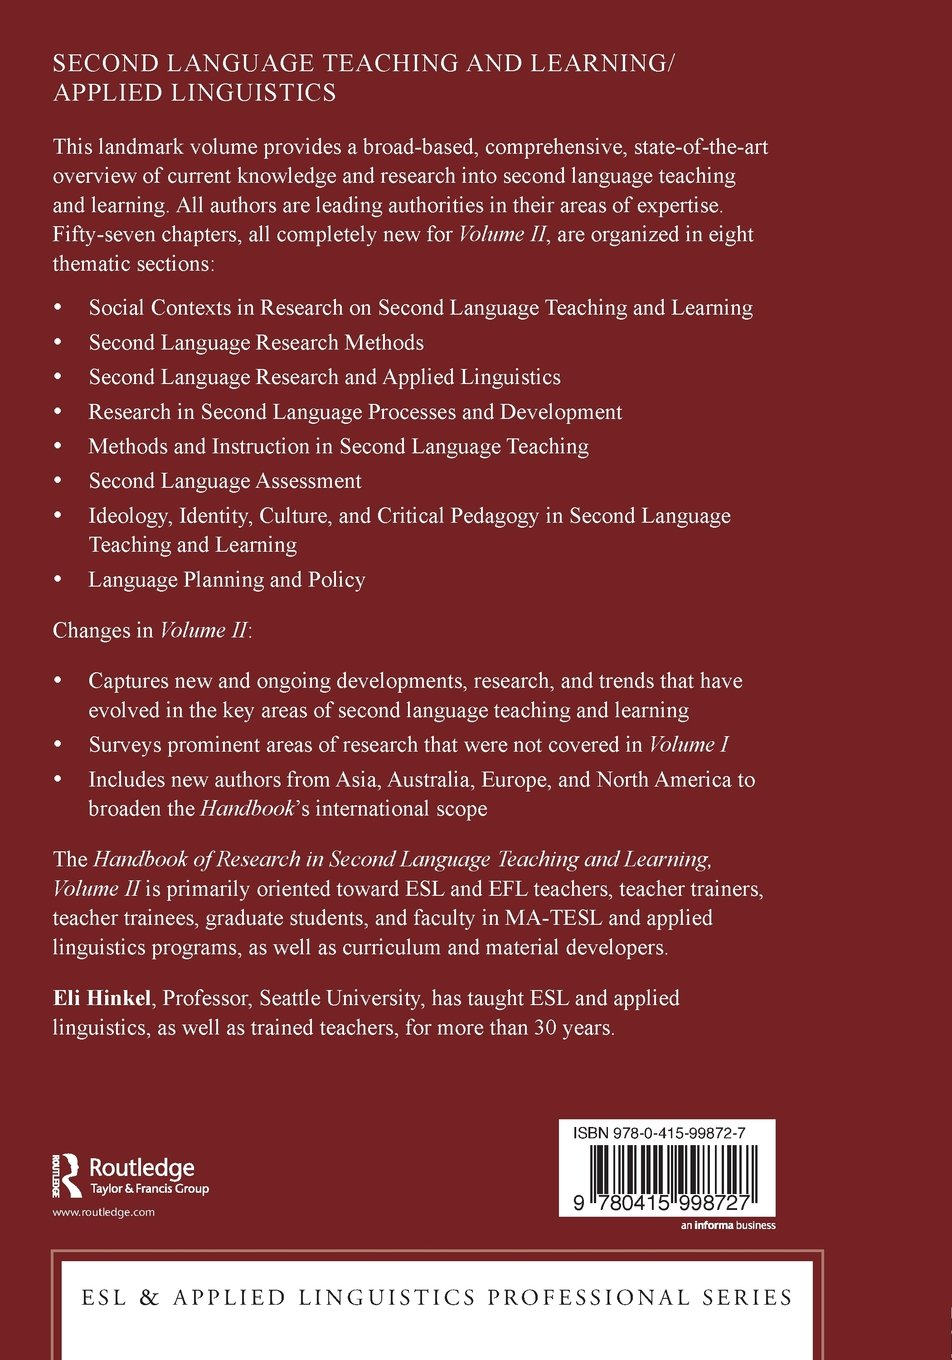 Handbook of Research in Second Language Teaching and Learning: Volume 2 (ESL & Applied Linguistics Professional Series) by Routledge